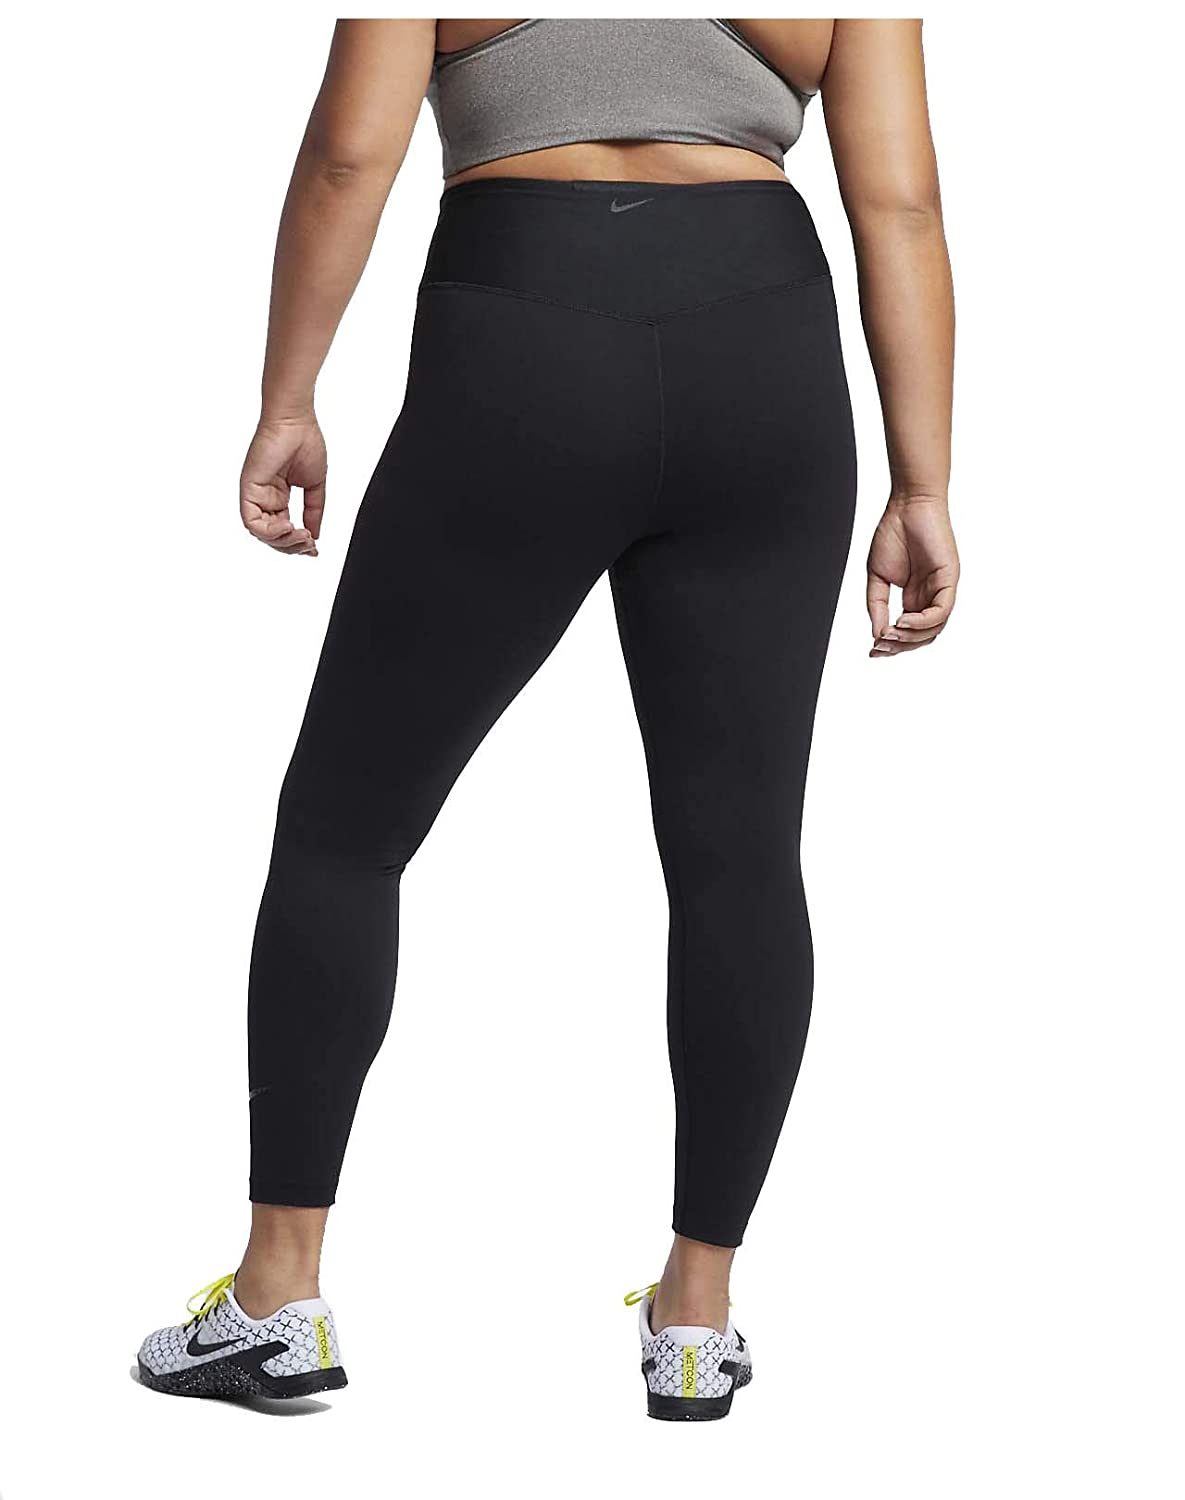 b1438425087 Amazon.com  Nike Women s Plus Power Sculpt High-Rise Training Tights Black  (3X)  Clothing